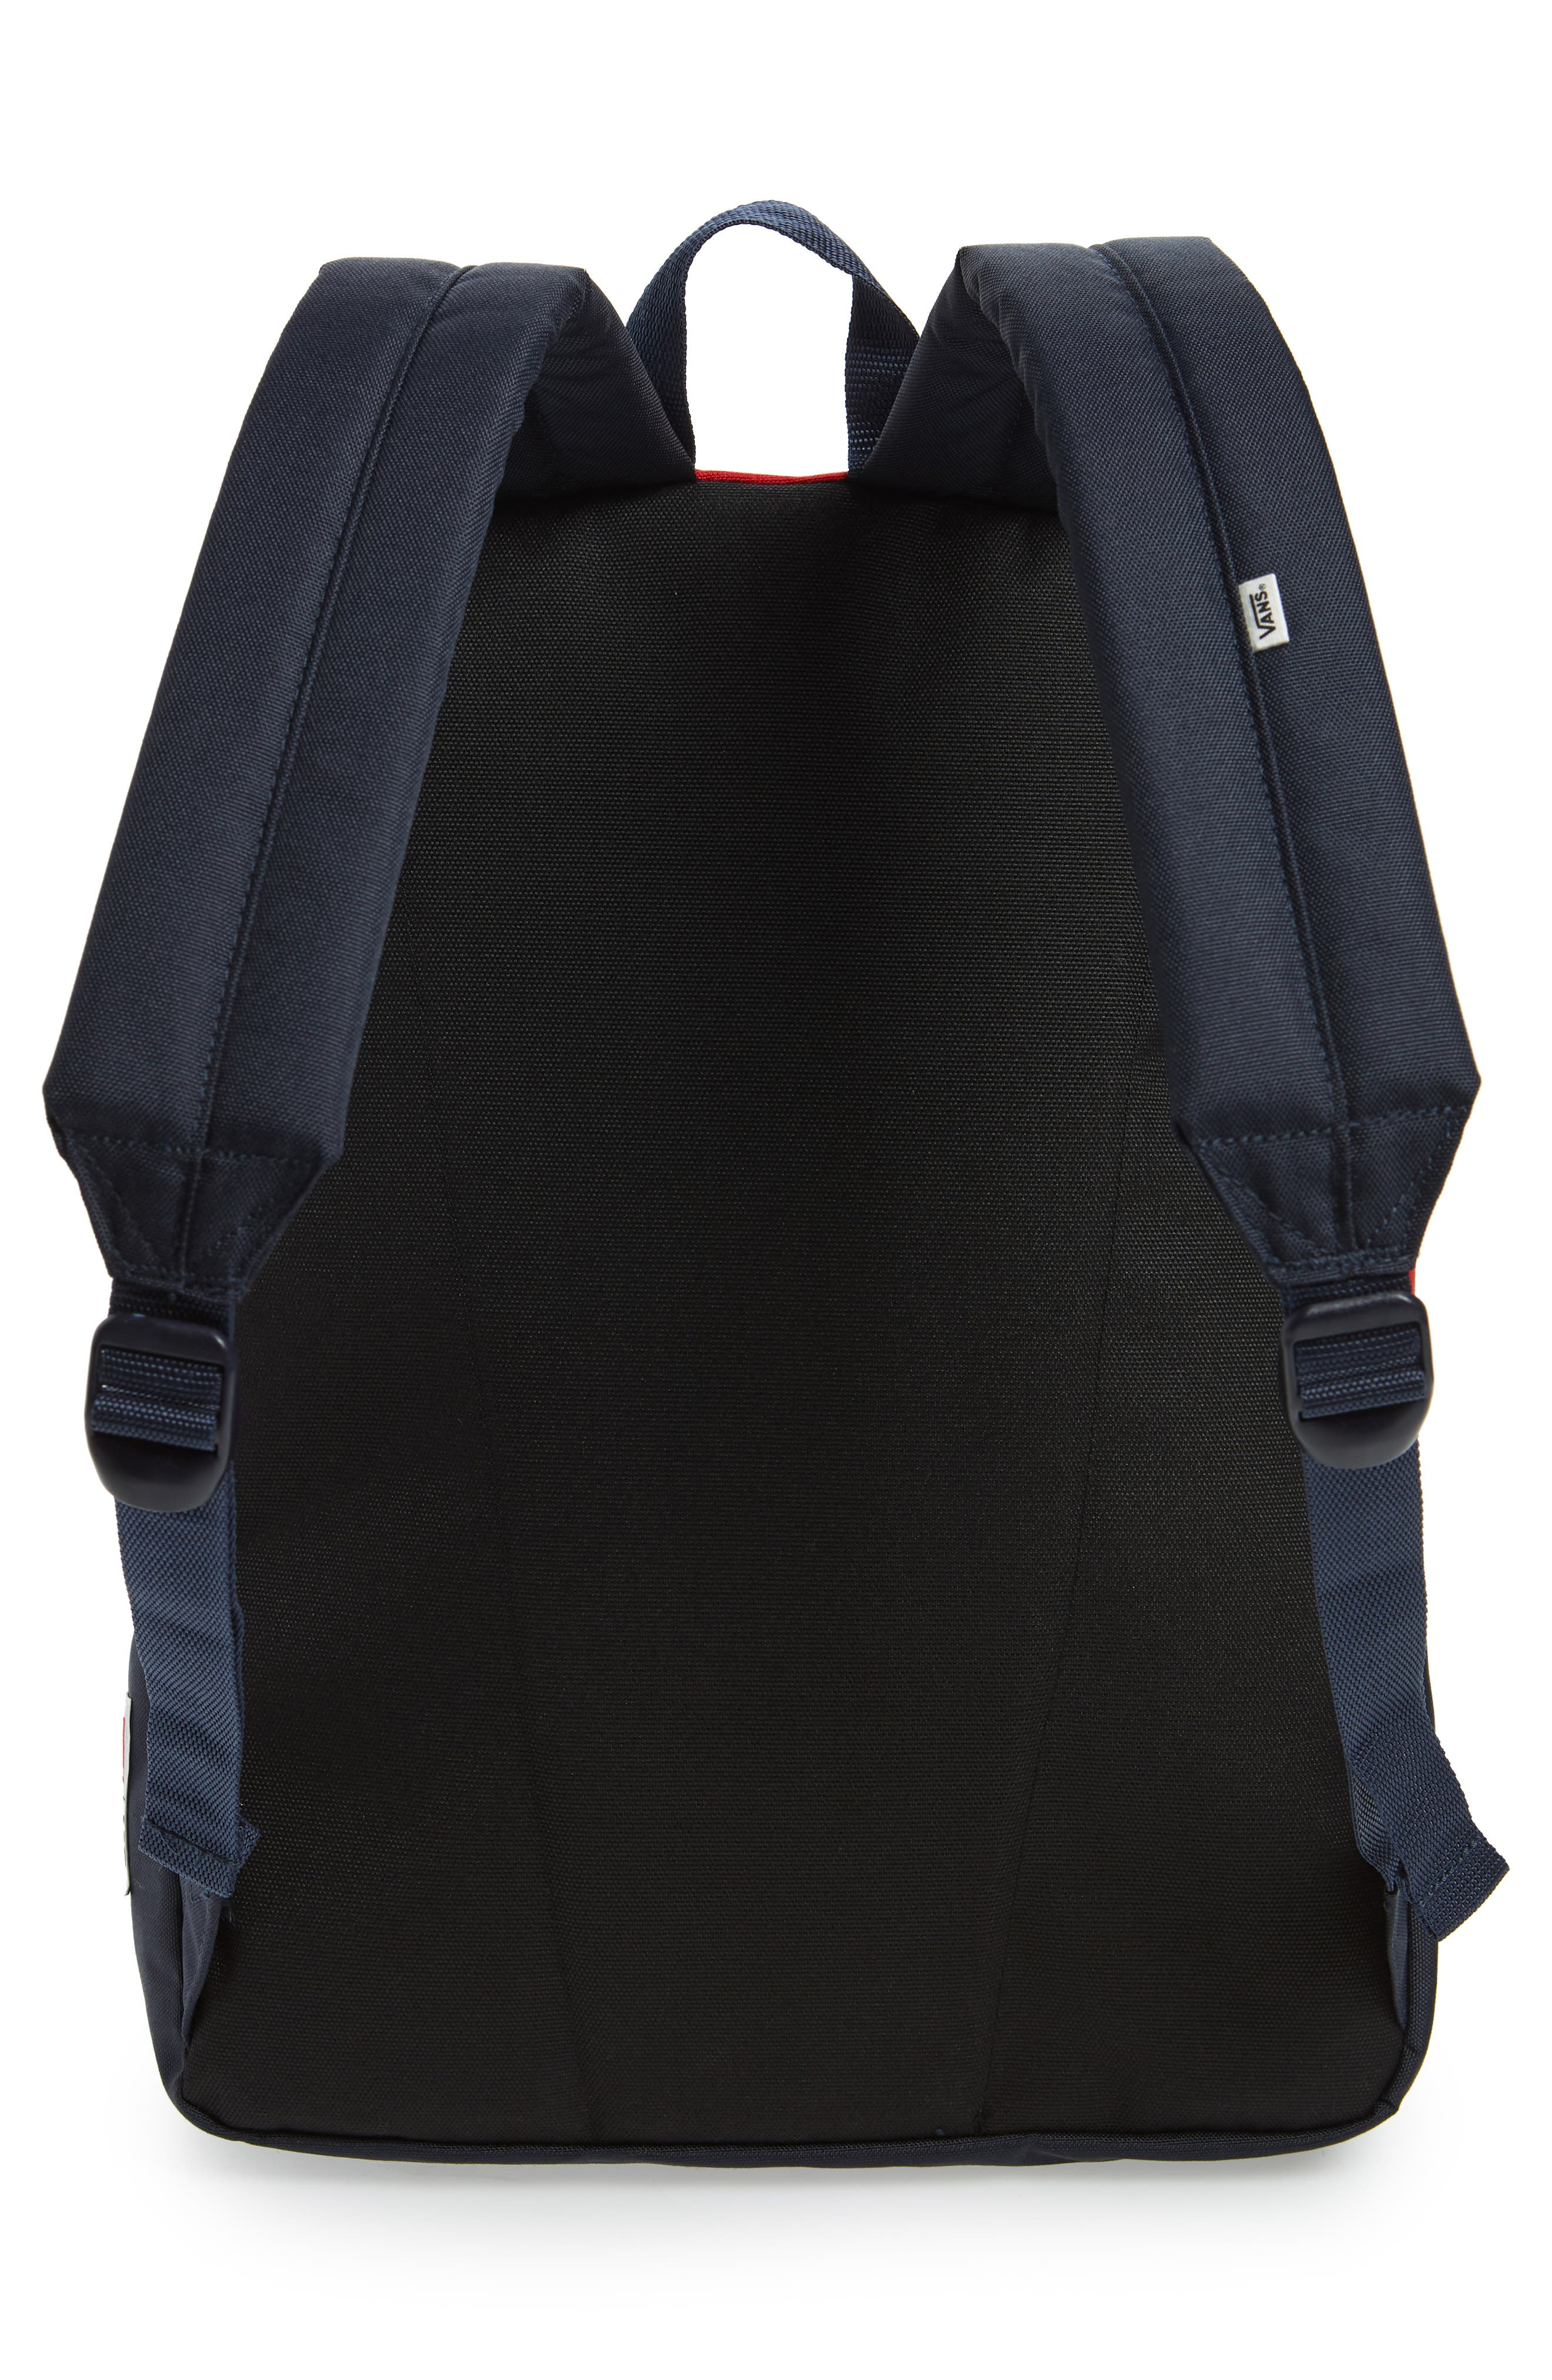 x Marvel<sup>®</sup> Captain Marvel Realm Backpack,                             Alternate thumbnail 2, color,                             601